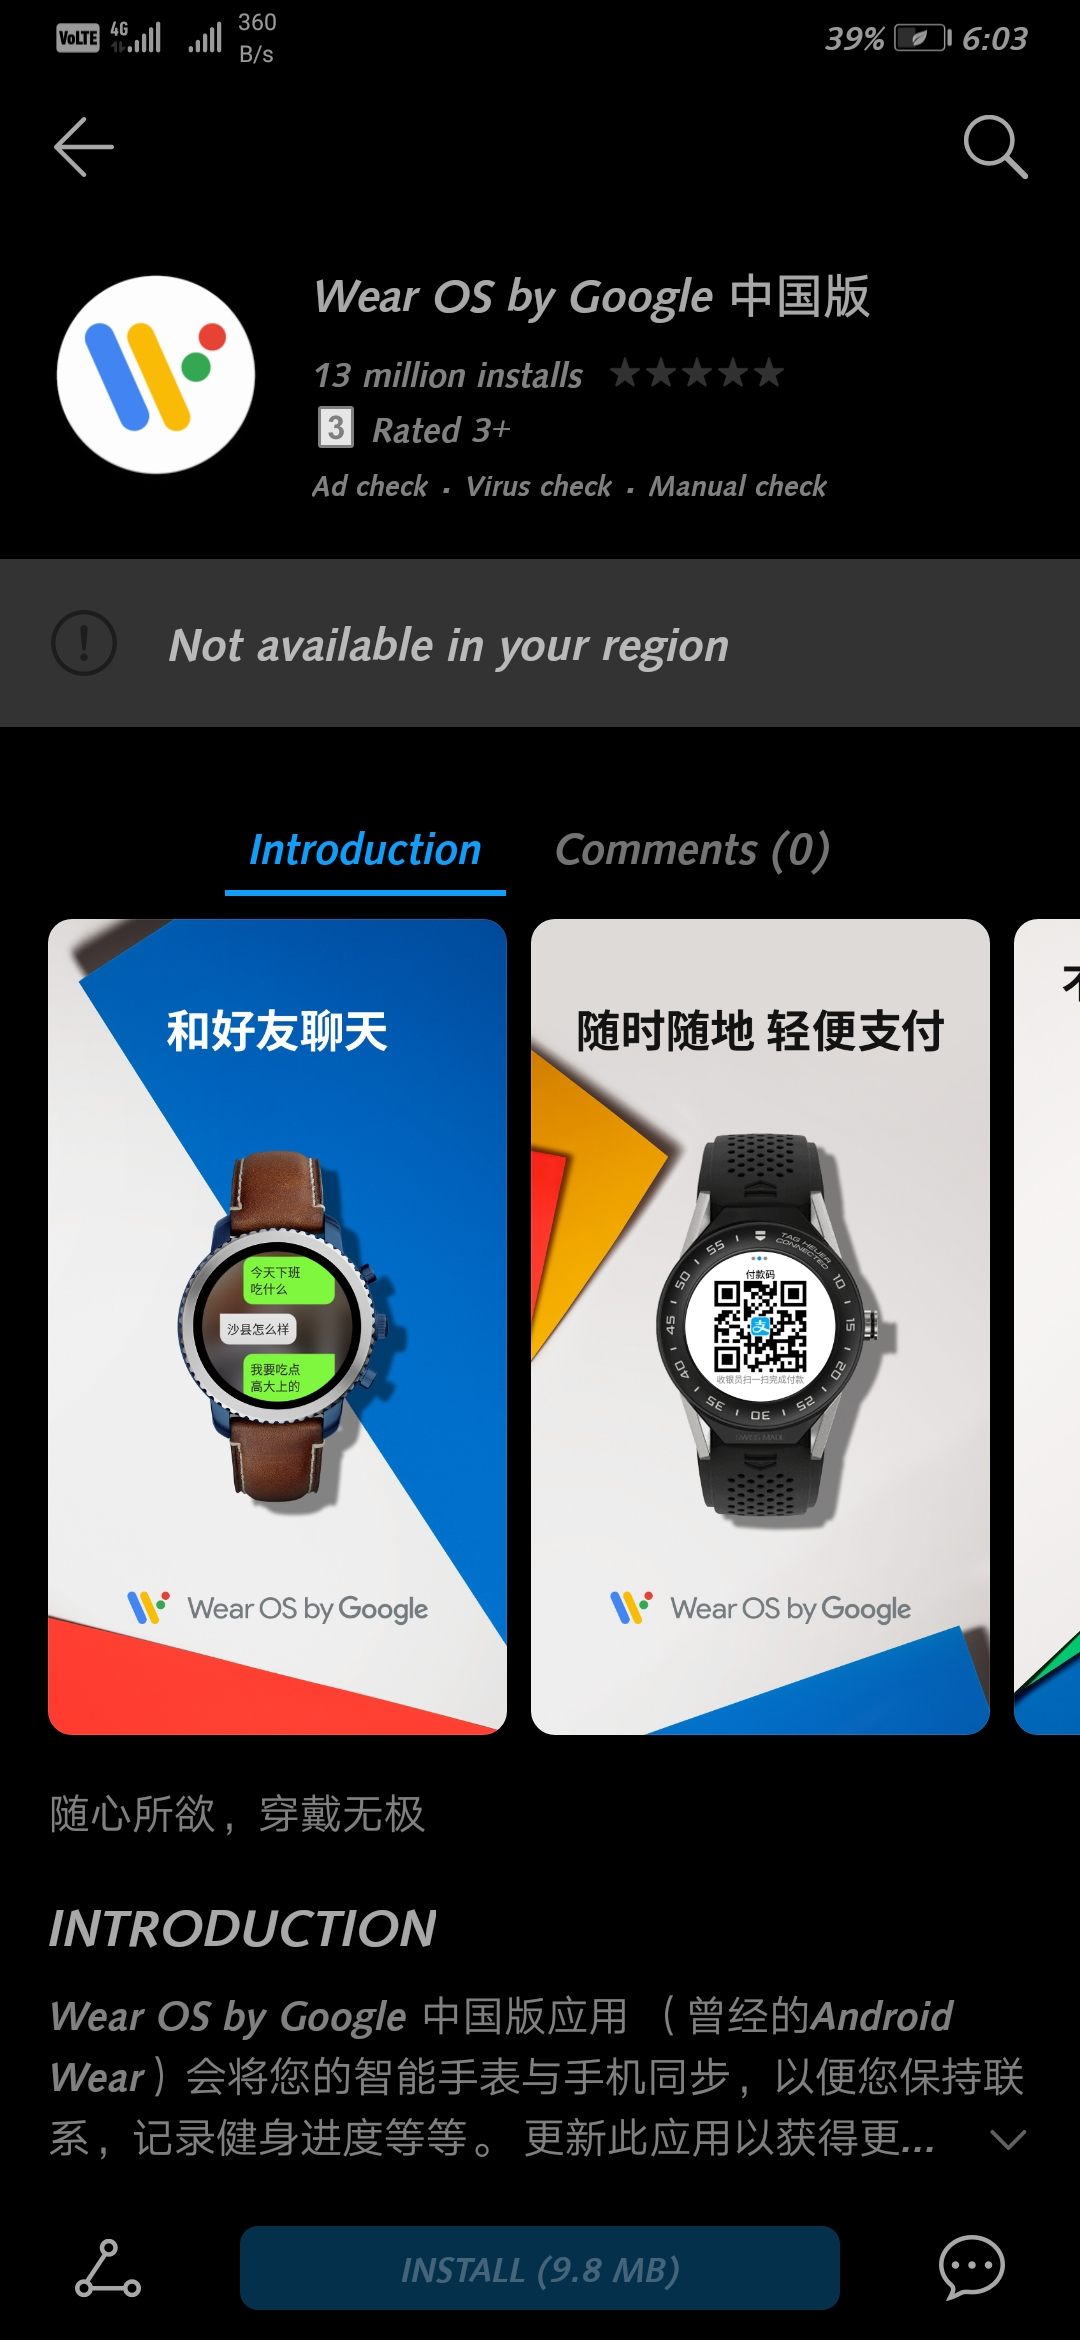 I bought a huawei watch 2 lte in China and now I can't sync